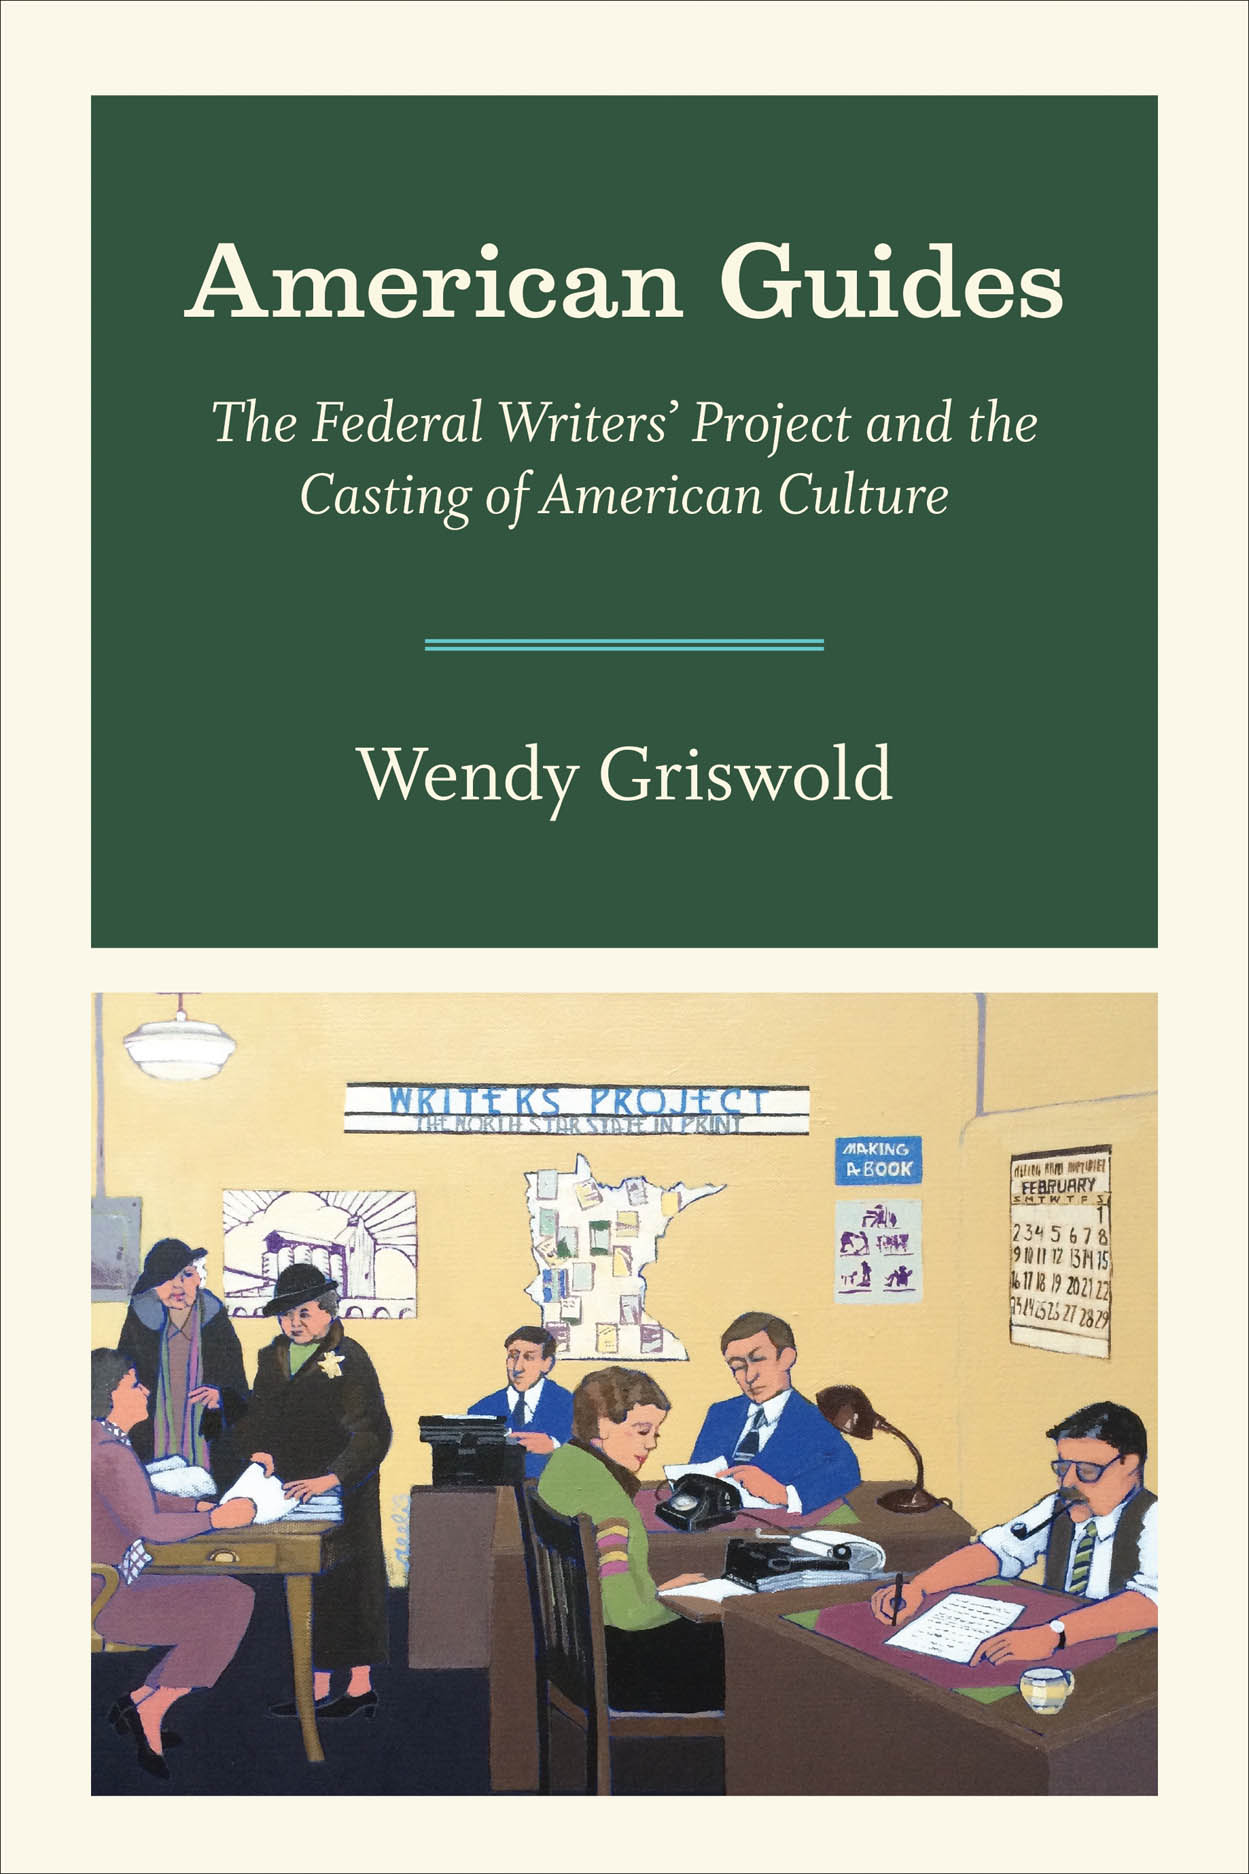 American Guides: The Federal Writers' Project and the Casting of American Culture